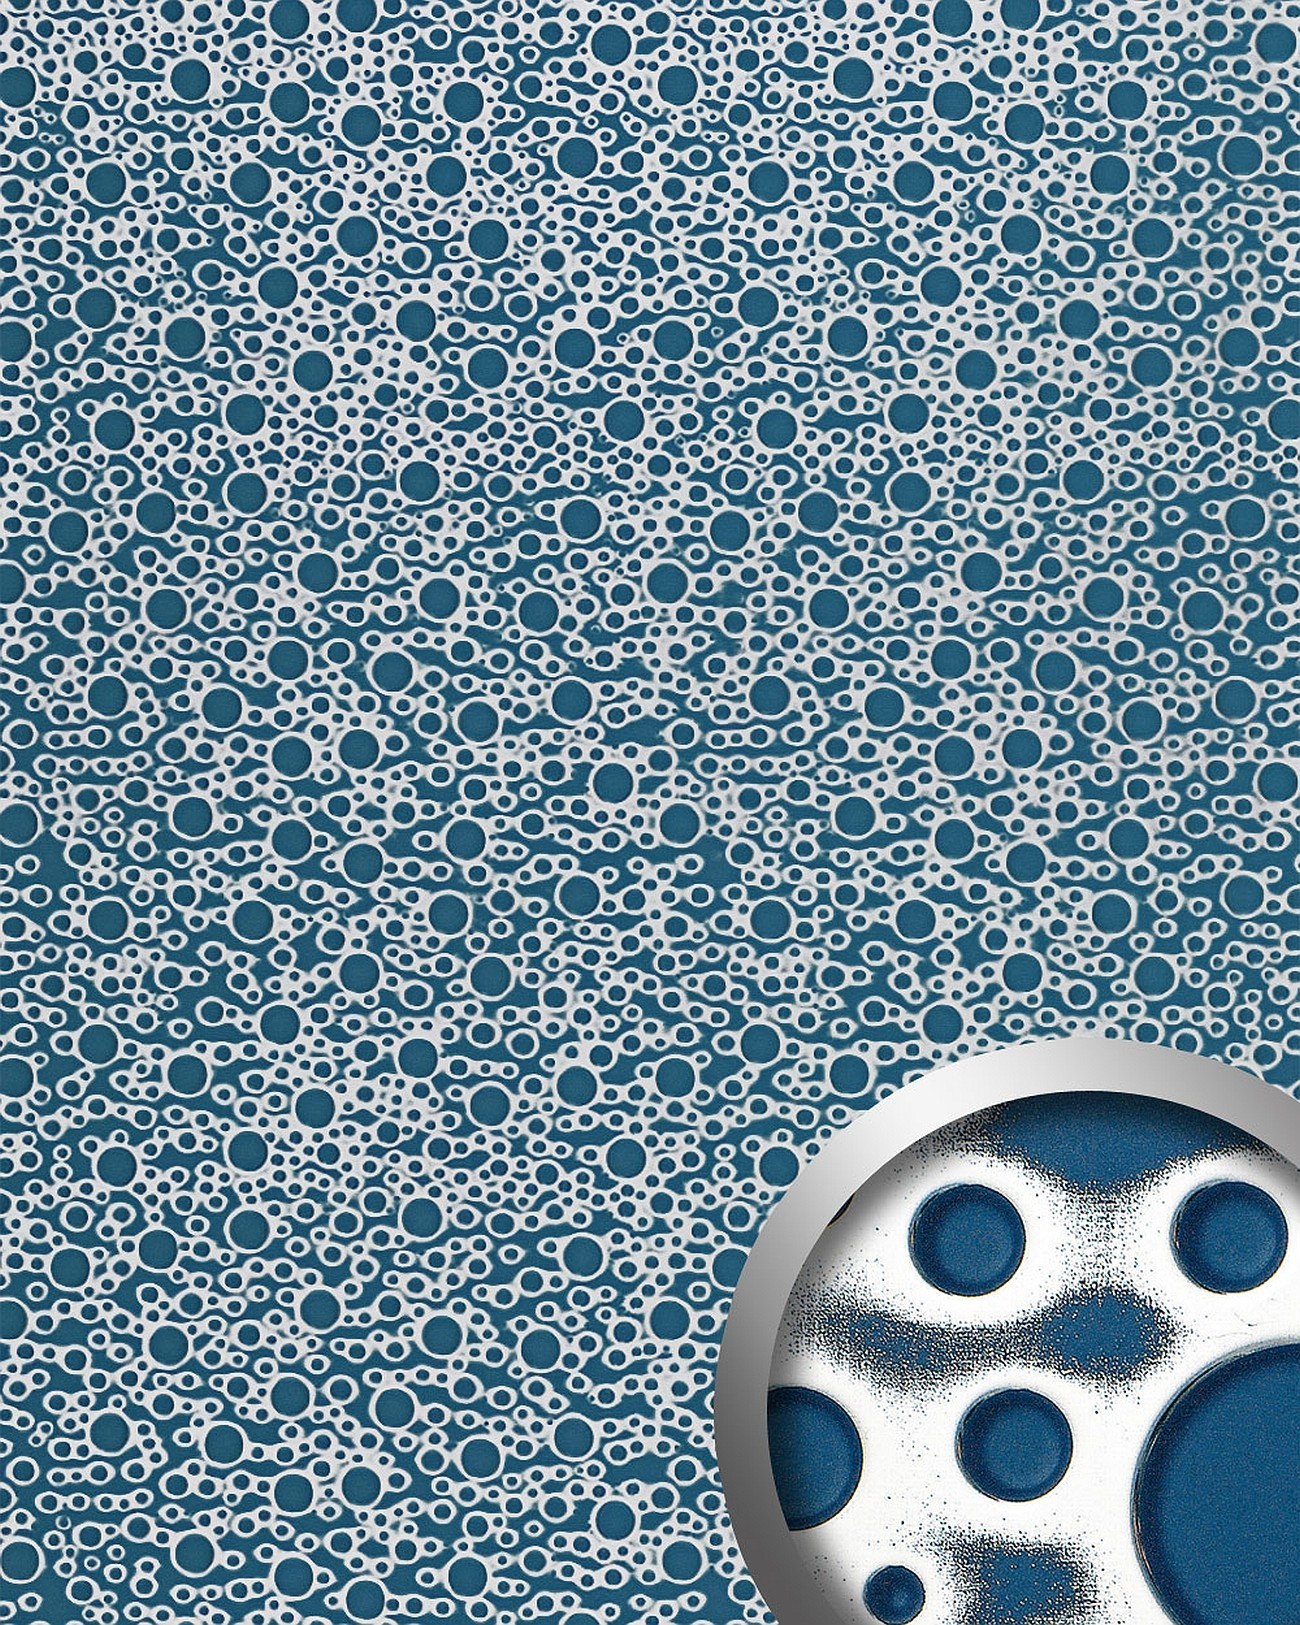 Wandpaneel 11712 BUBBLE Kunststoff Retro 70ies 3D Optik Blau Silber